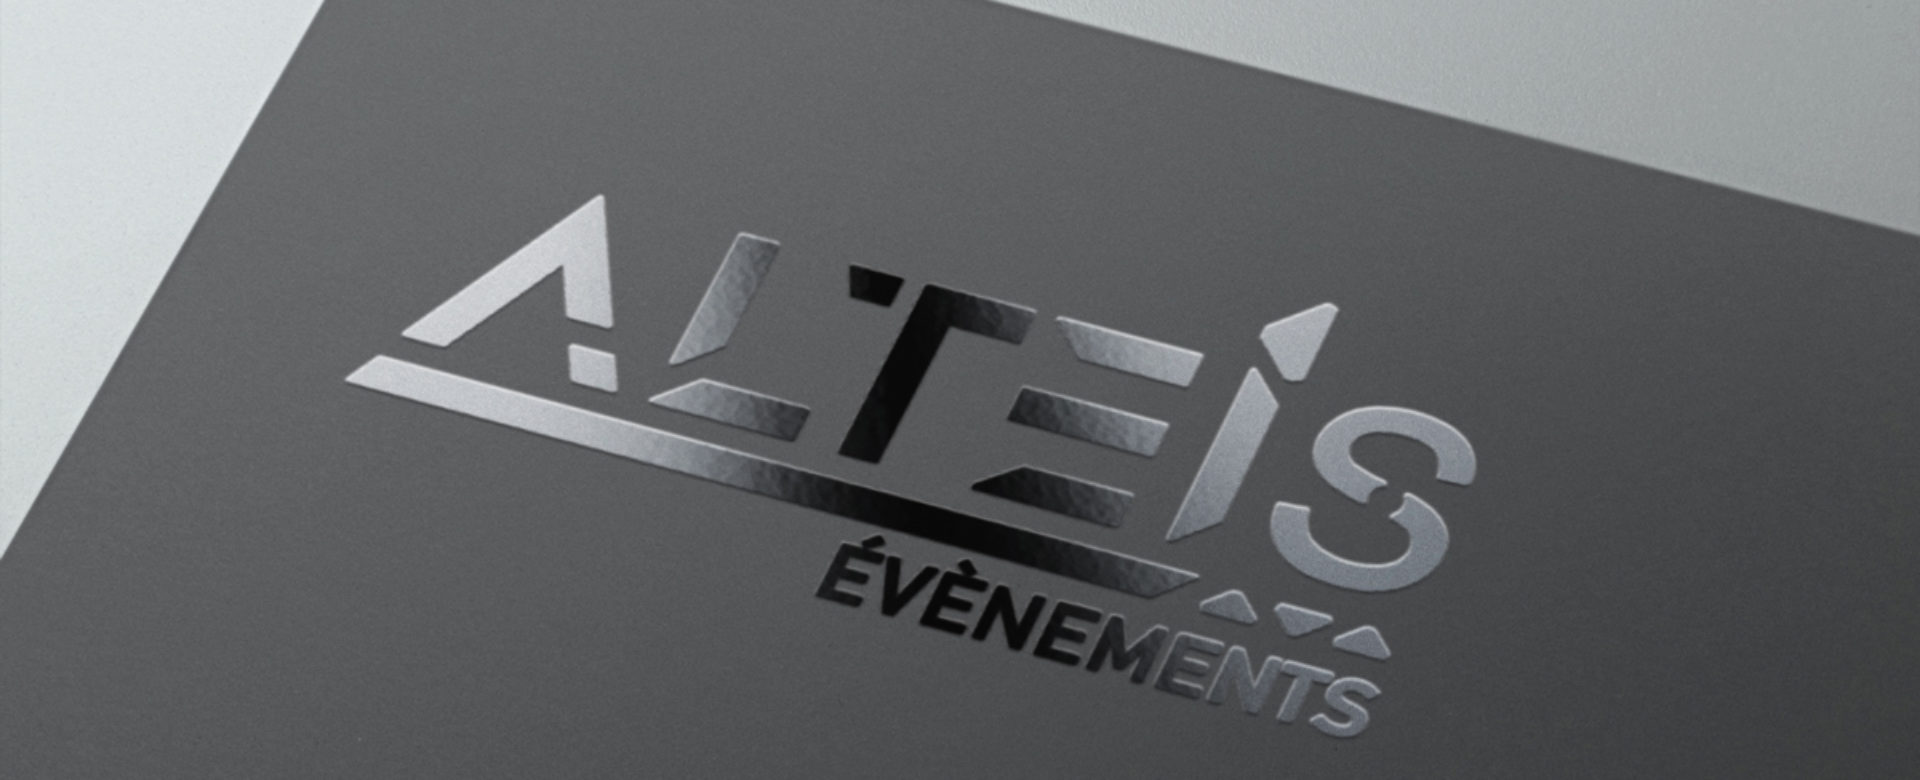 alteis-evenement-mockup-argent